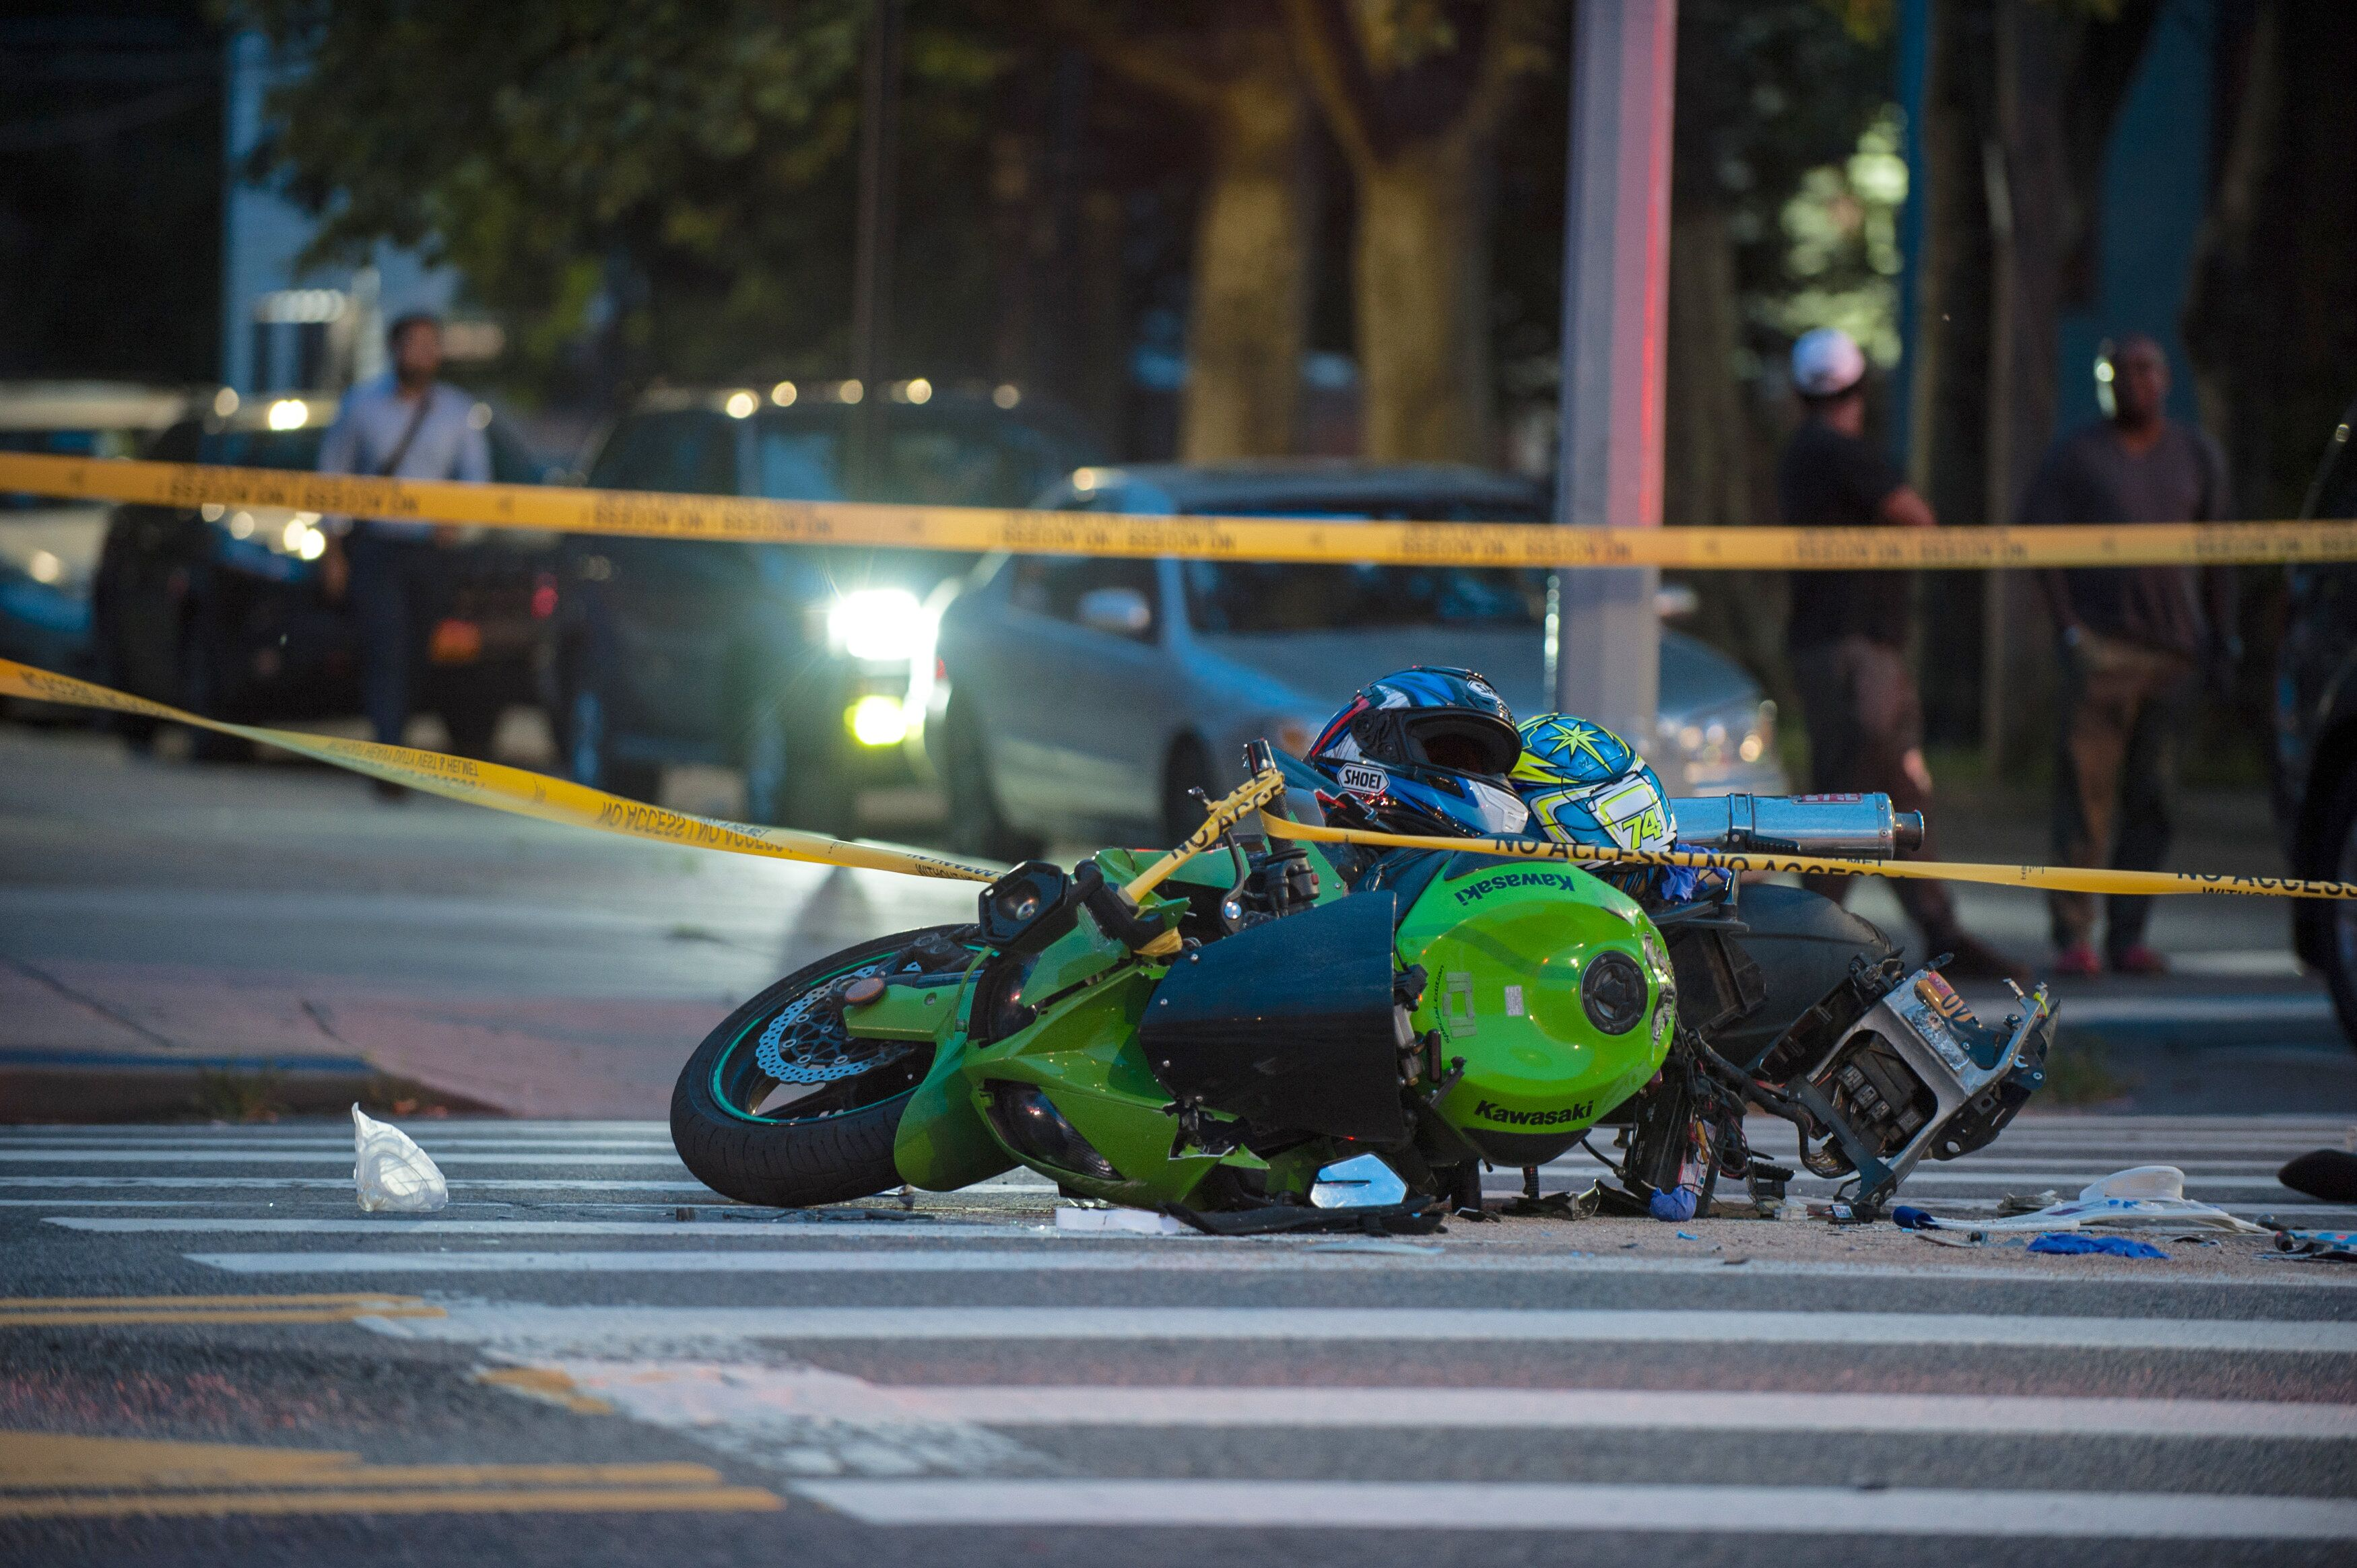 Two Motorcyclists Crash In Southern Brooklyn: One Killed